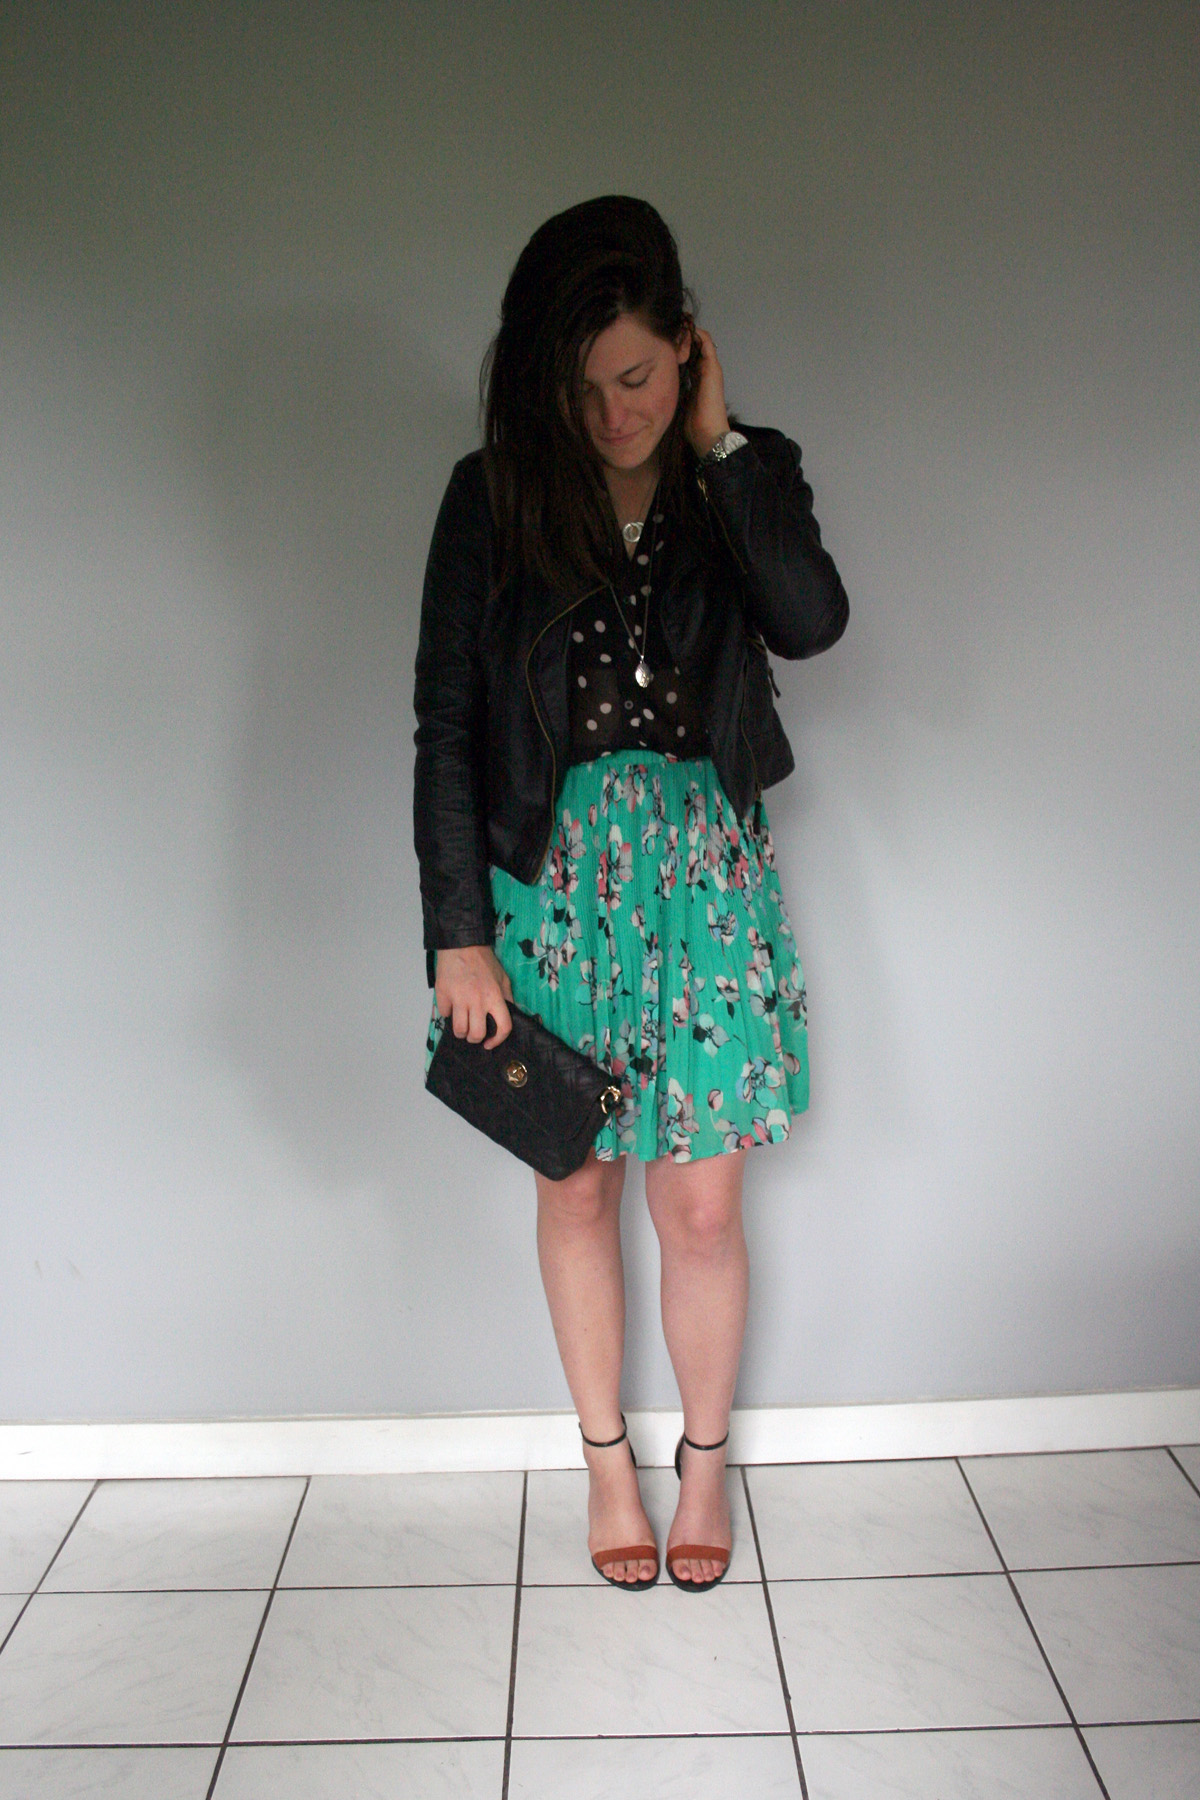 polka dots, floral, leather jacket and a clutch